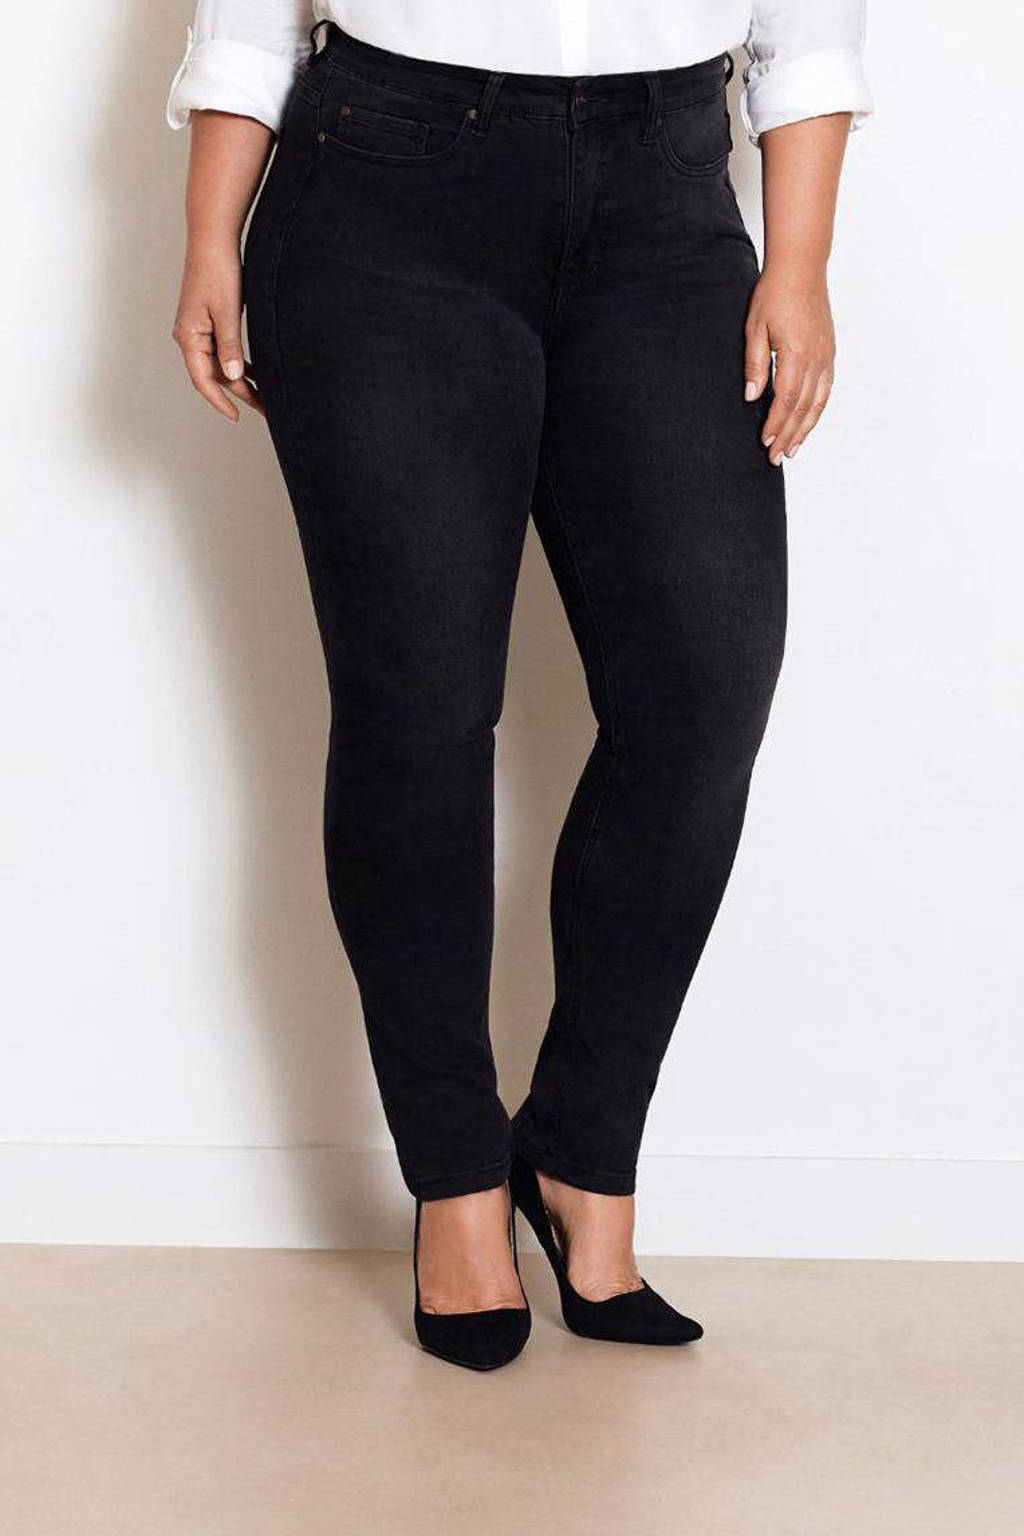 Fox Factor IRI Jet Black high waist slim fit jeans, Zwart stonewashed